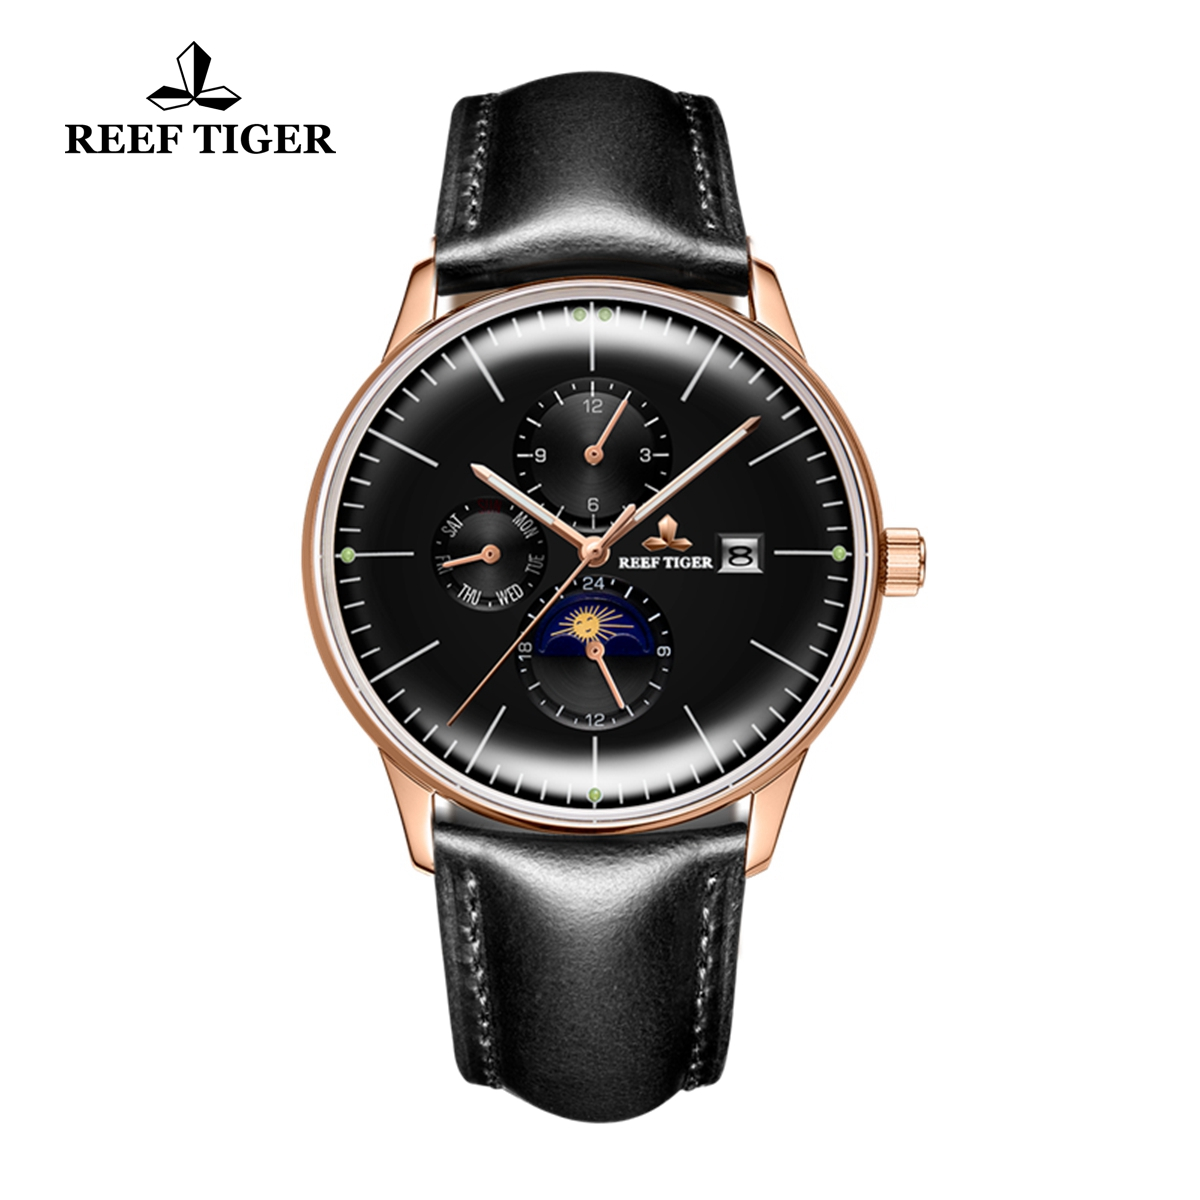 Reef Tiger Seattle Philosopher Rose Gold Silky Leather Strap Automatic Watches with Date Day RGA1653-PBBH